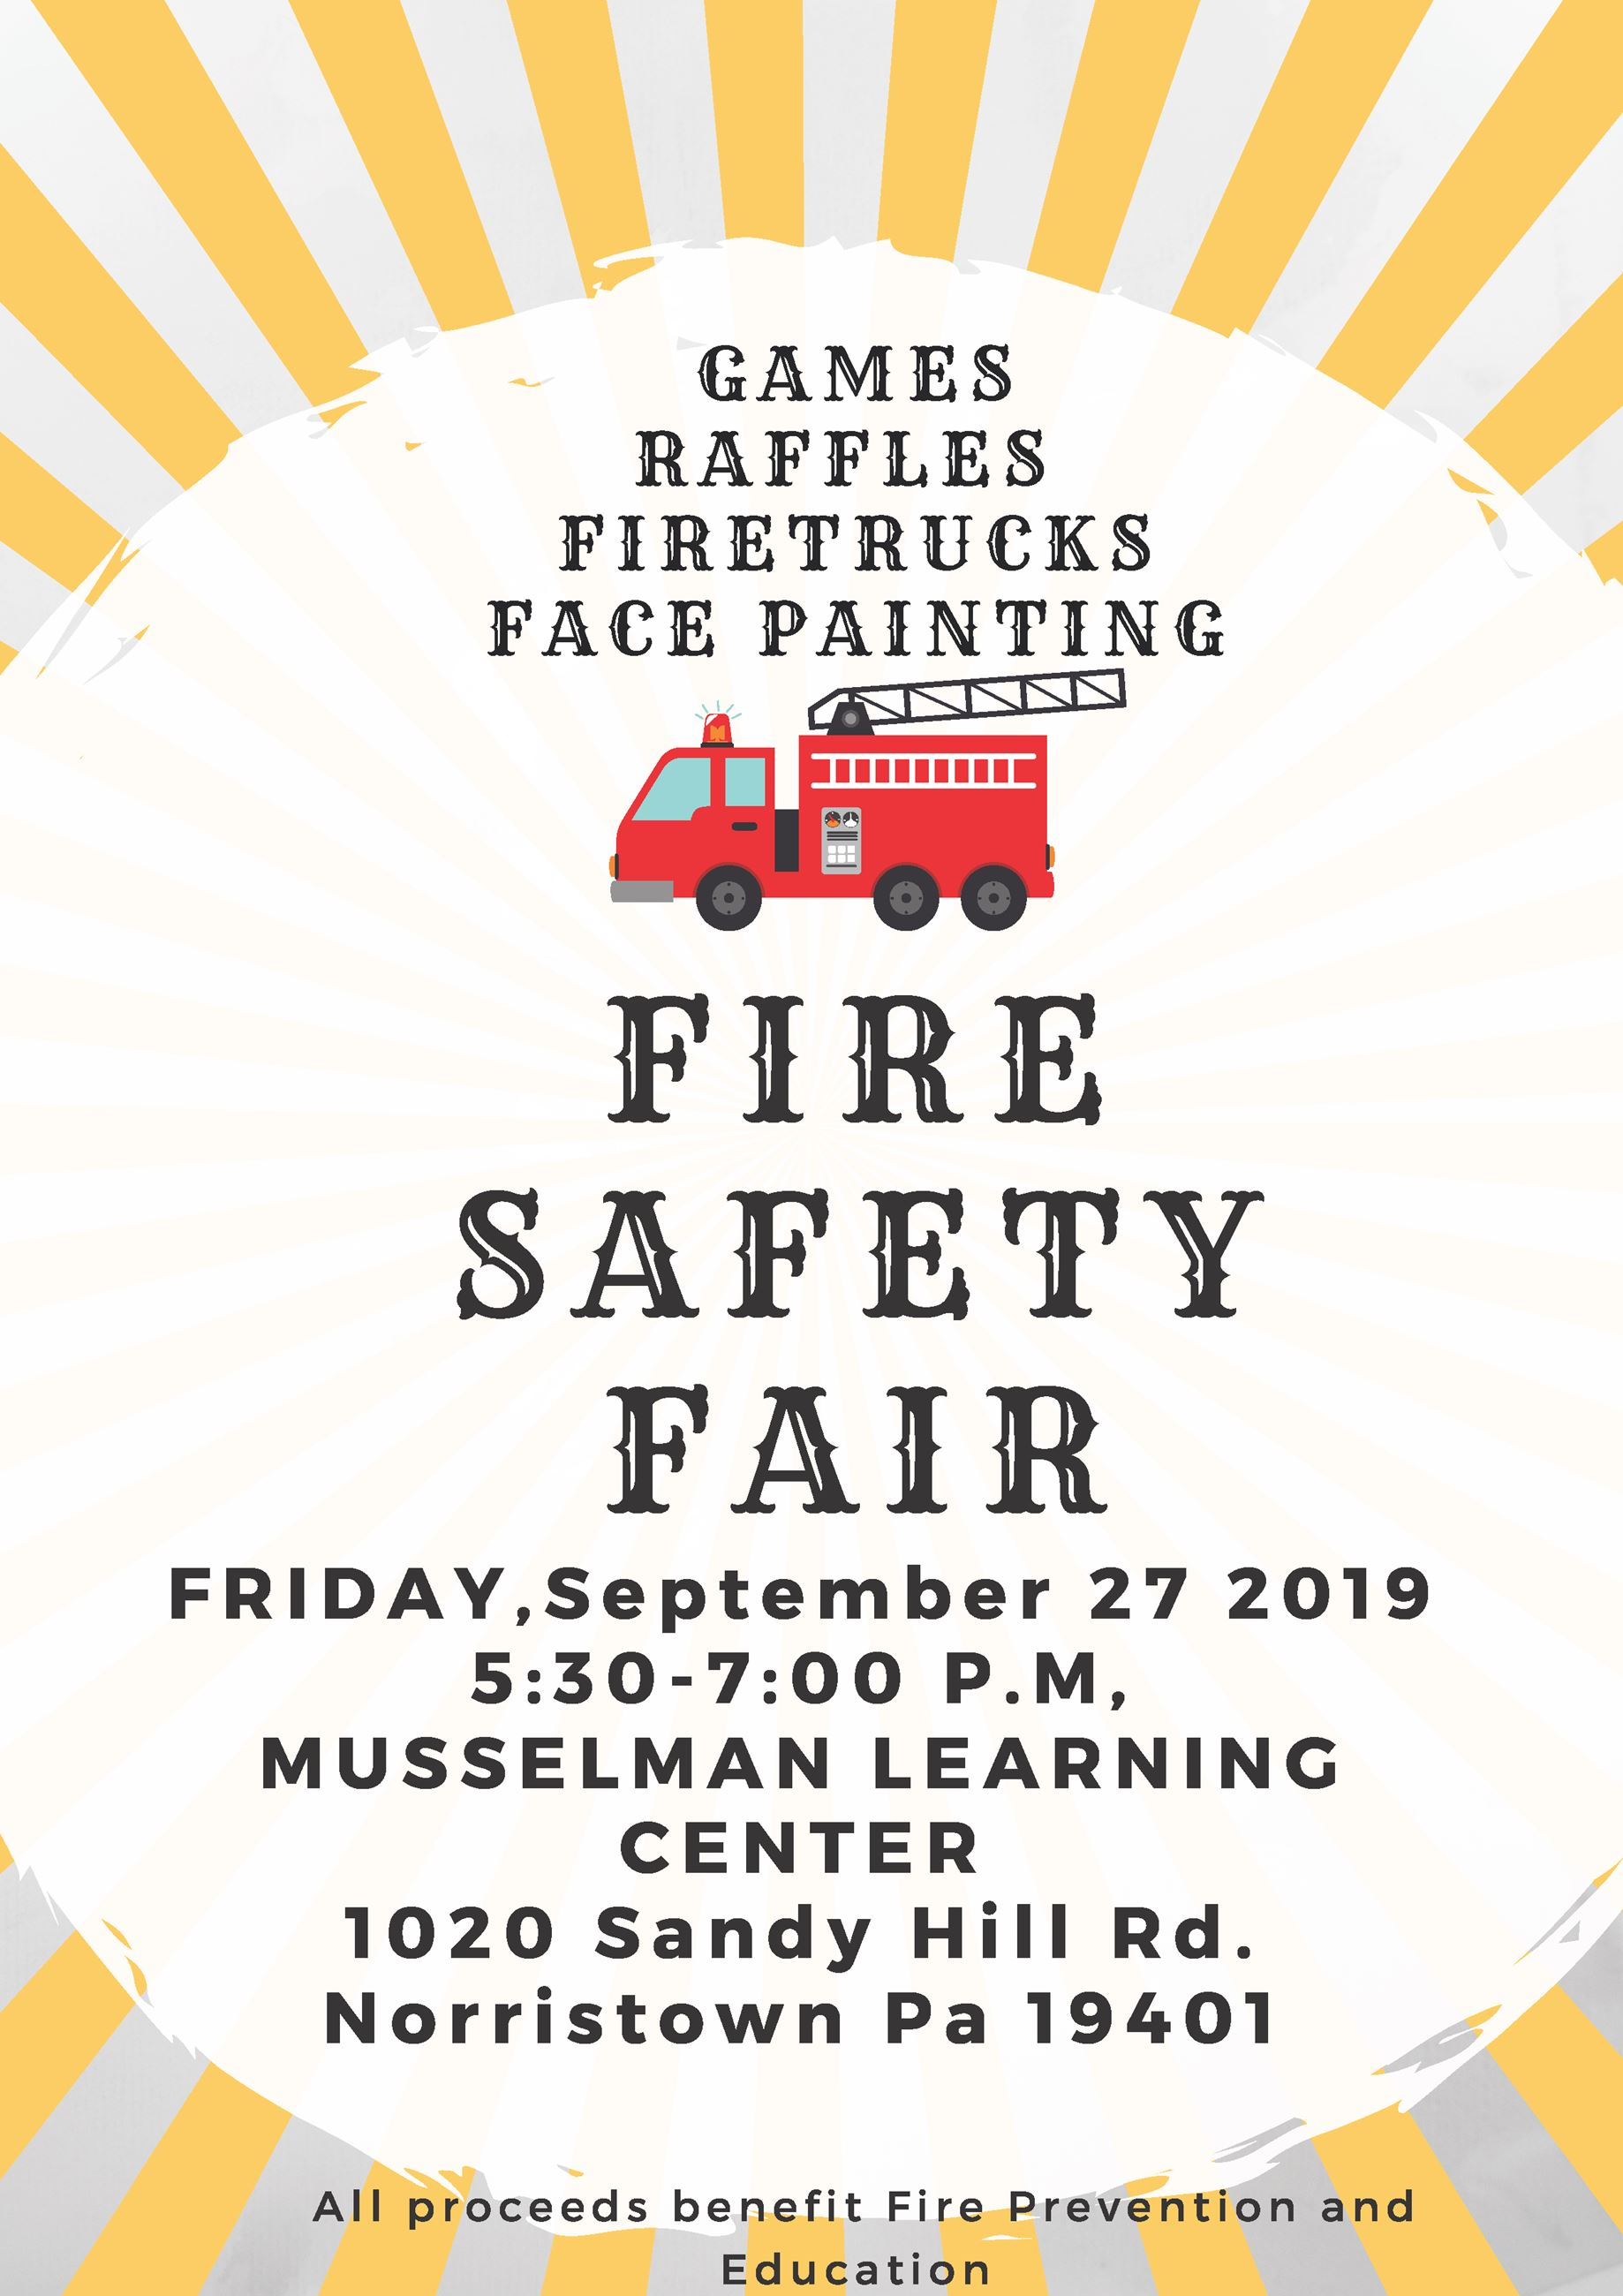 Fire safety fair flyer with red fire truck